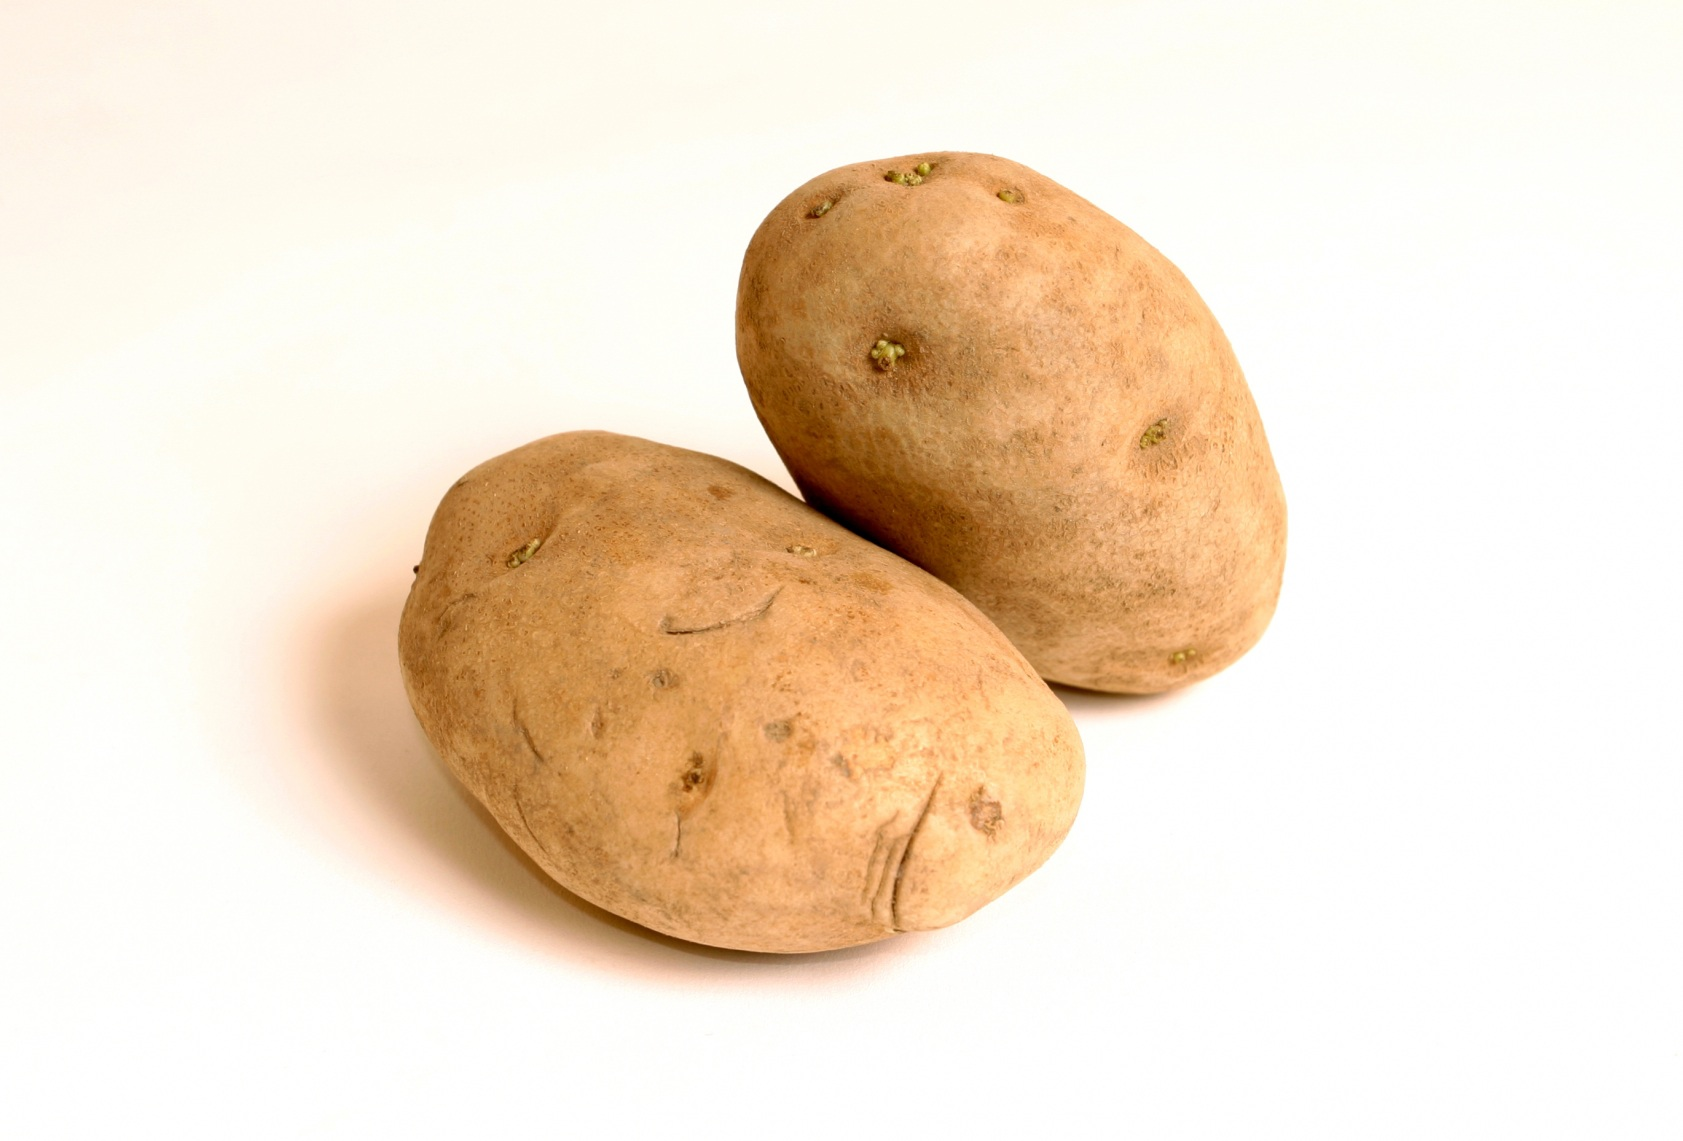 Potato industry moves towards deregulation